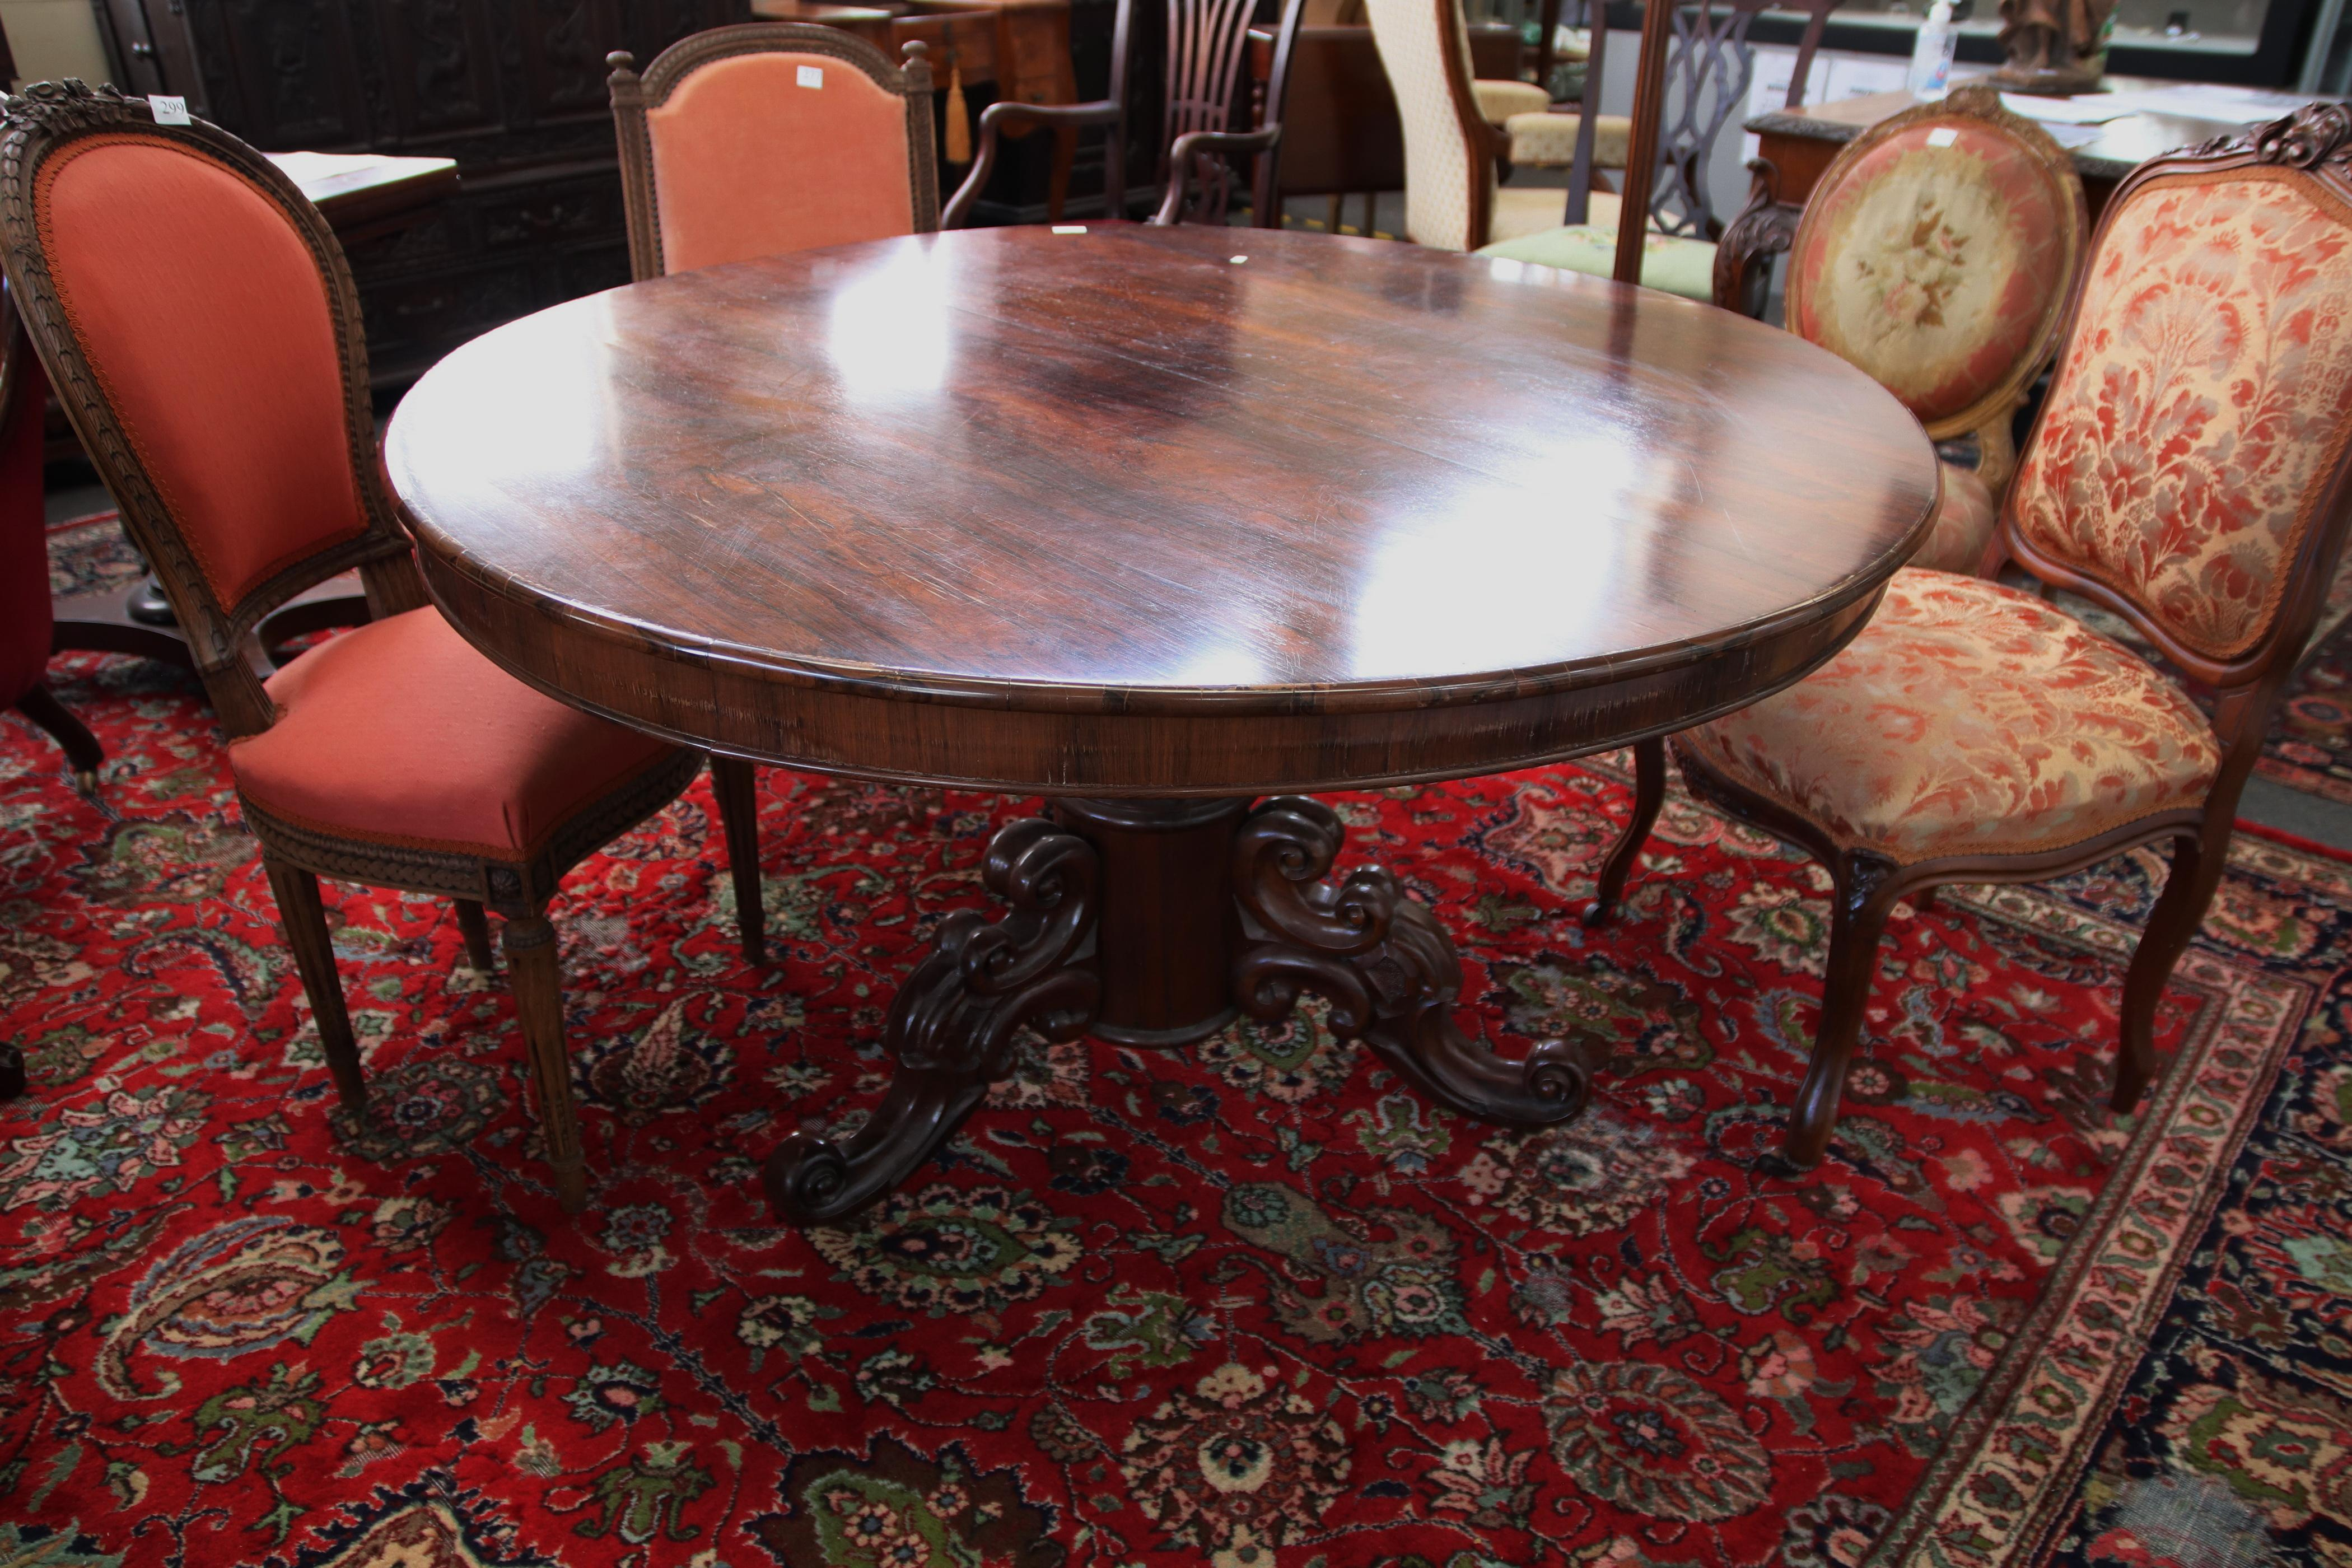 19TH CENTURY ENGLISH ROSEWOOD ROUND DINING TABLE, WITH HEAVILY CARVED TRI-FOOTED BASE, DIAM 128CM DIAM X 73CM H (SPLIT DOWN GLUE LINE ON TOP)